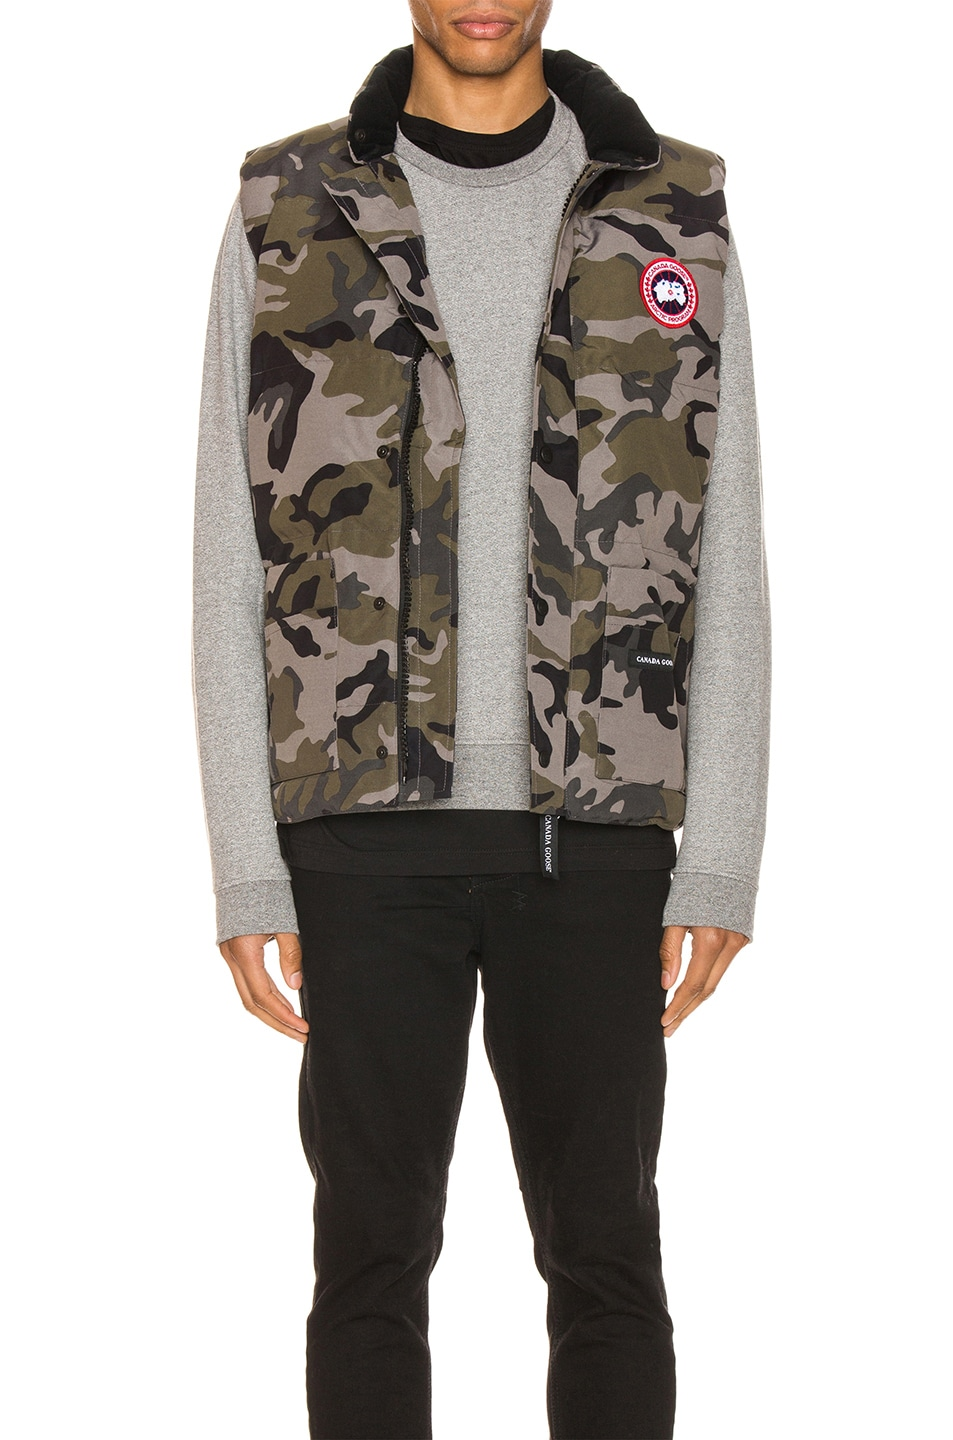 Canada Goose Accessories Freestyle Crew Vest